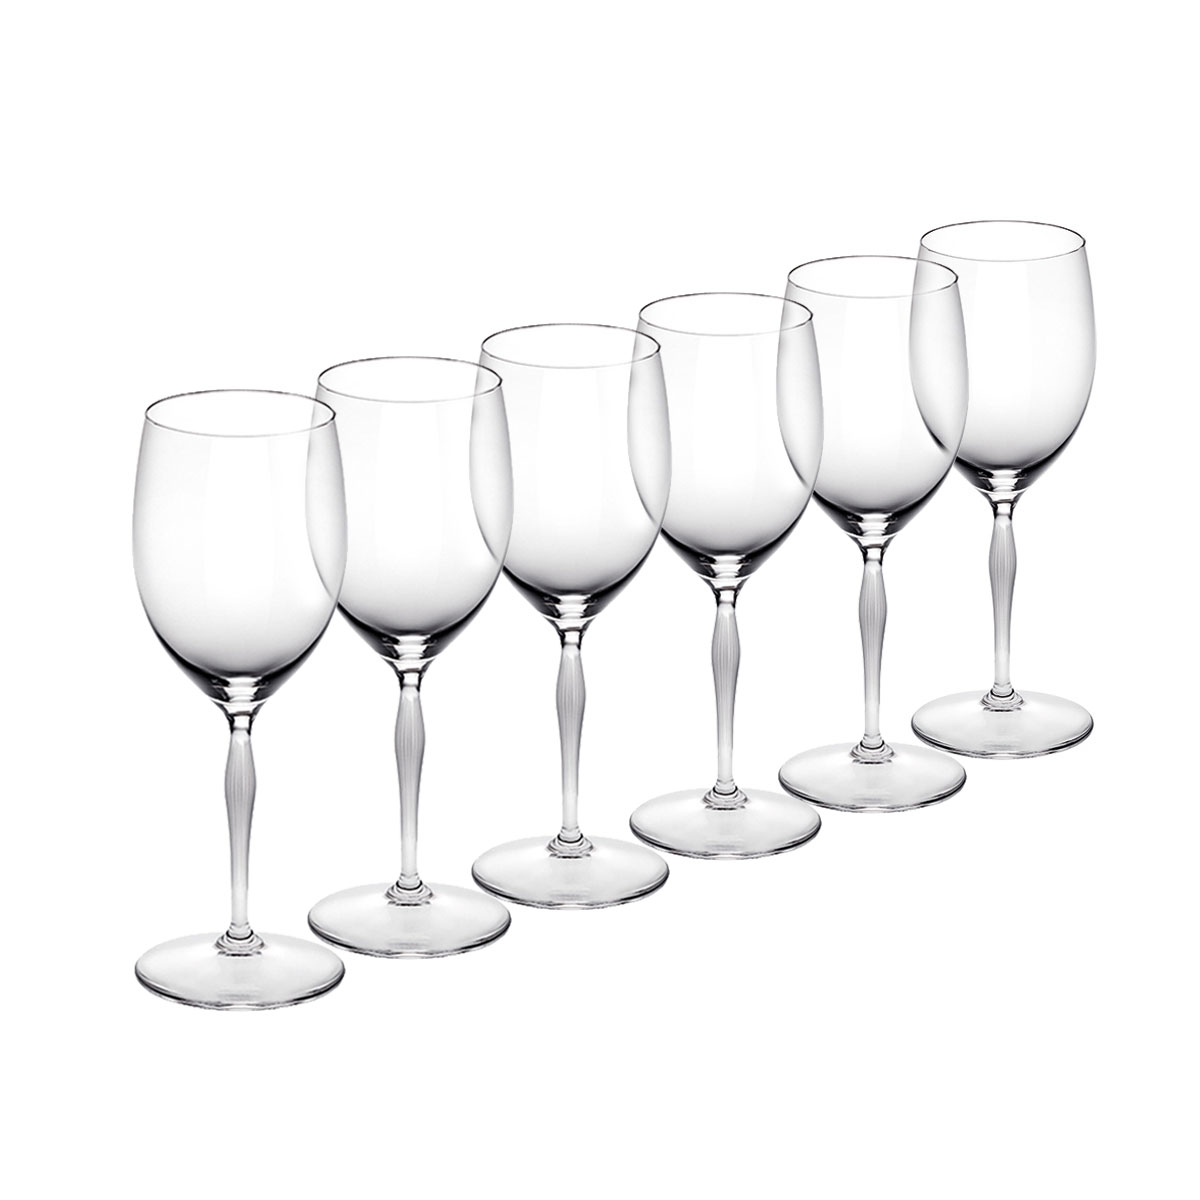 Lalique 100 Points Water Crystal Glasses By James Suckling, Set of six